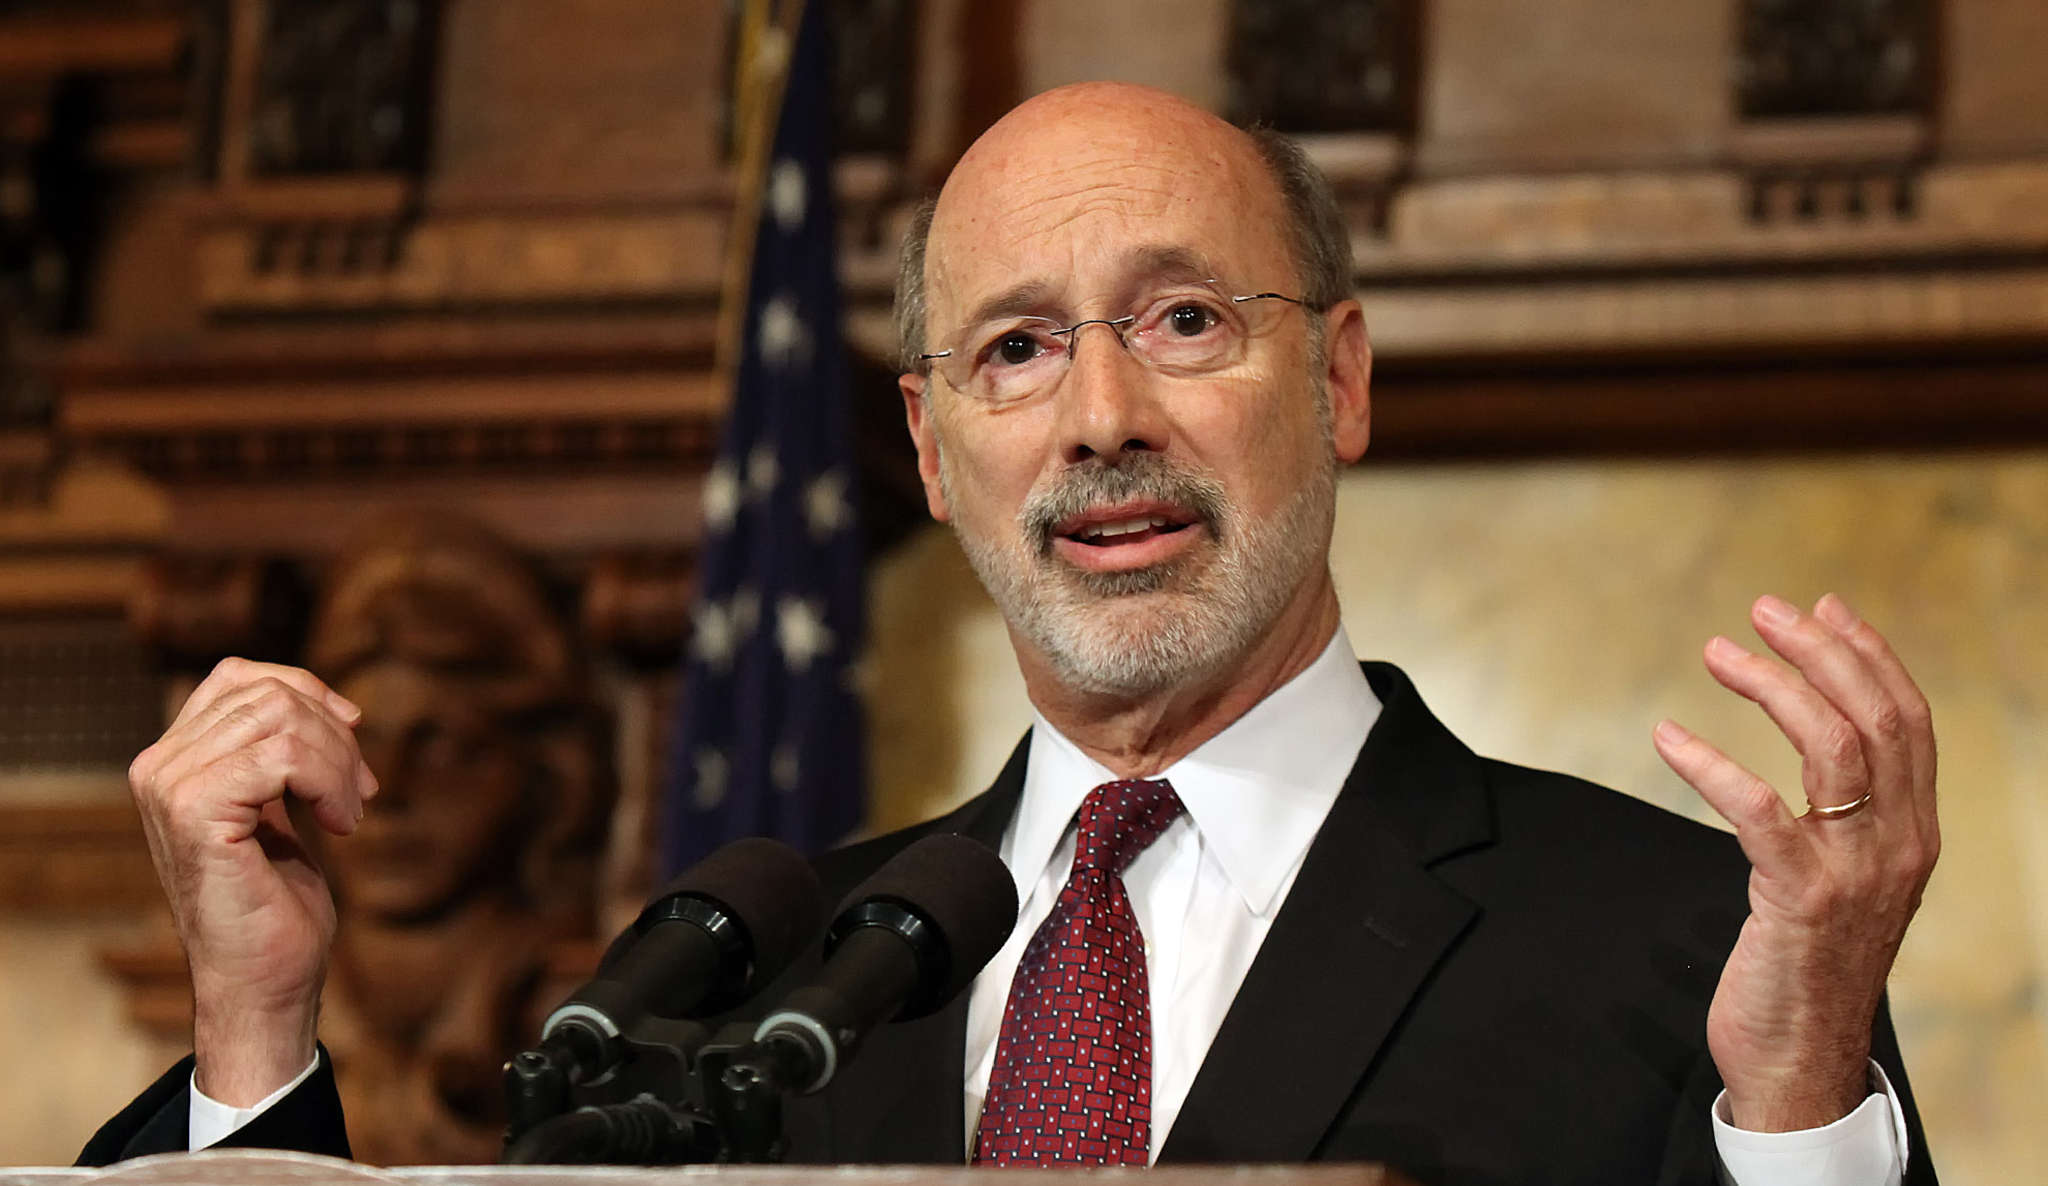 CHRIS KNIGHT / ASSOCIATED PRESS Gov. Wolf will get his top goal - more for schools - without adding a natural-gas severance tax.